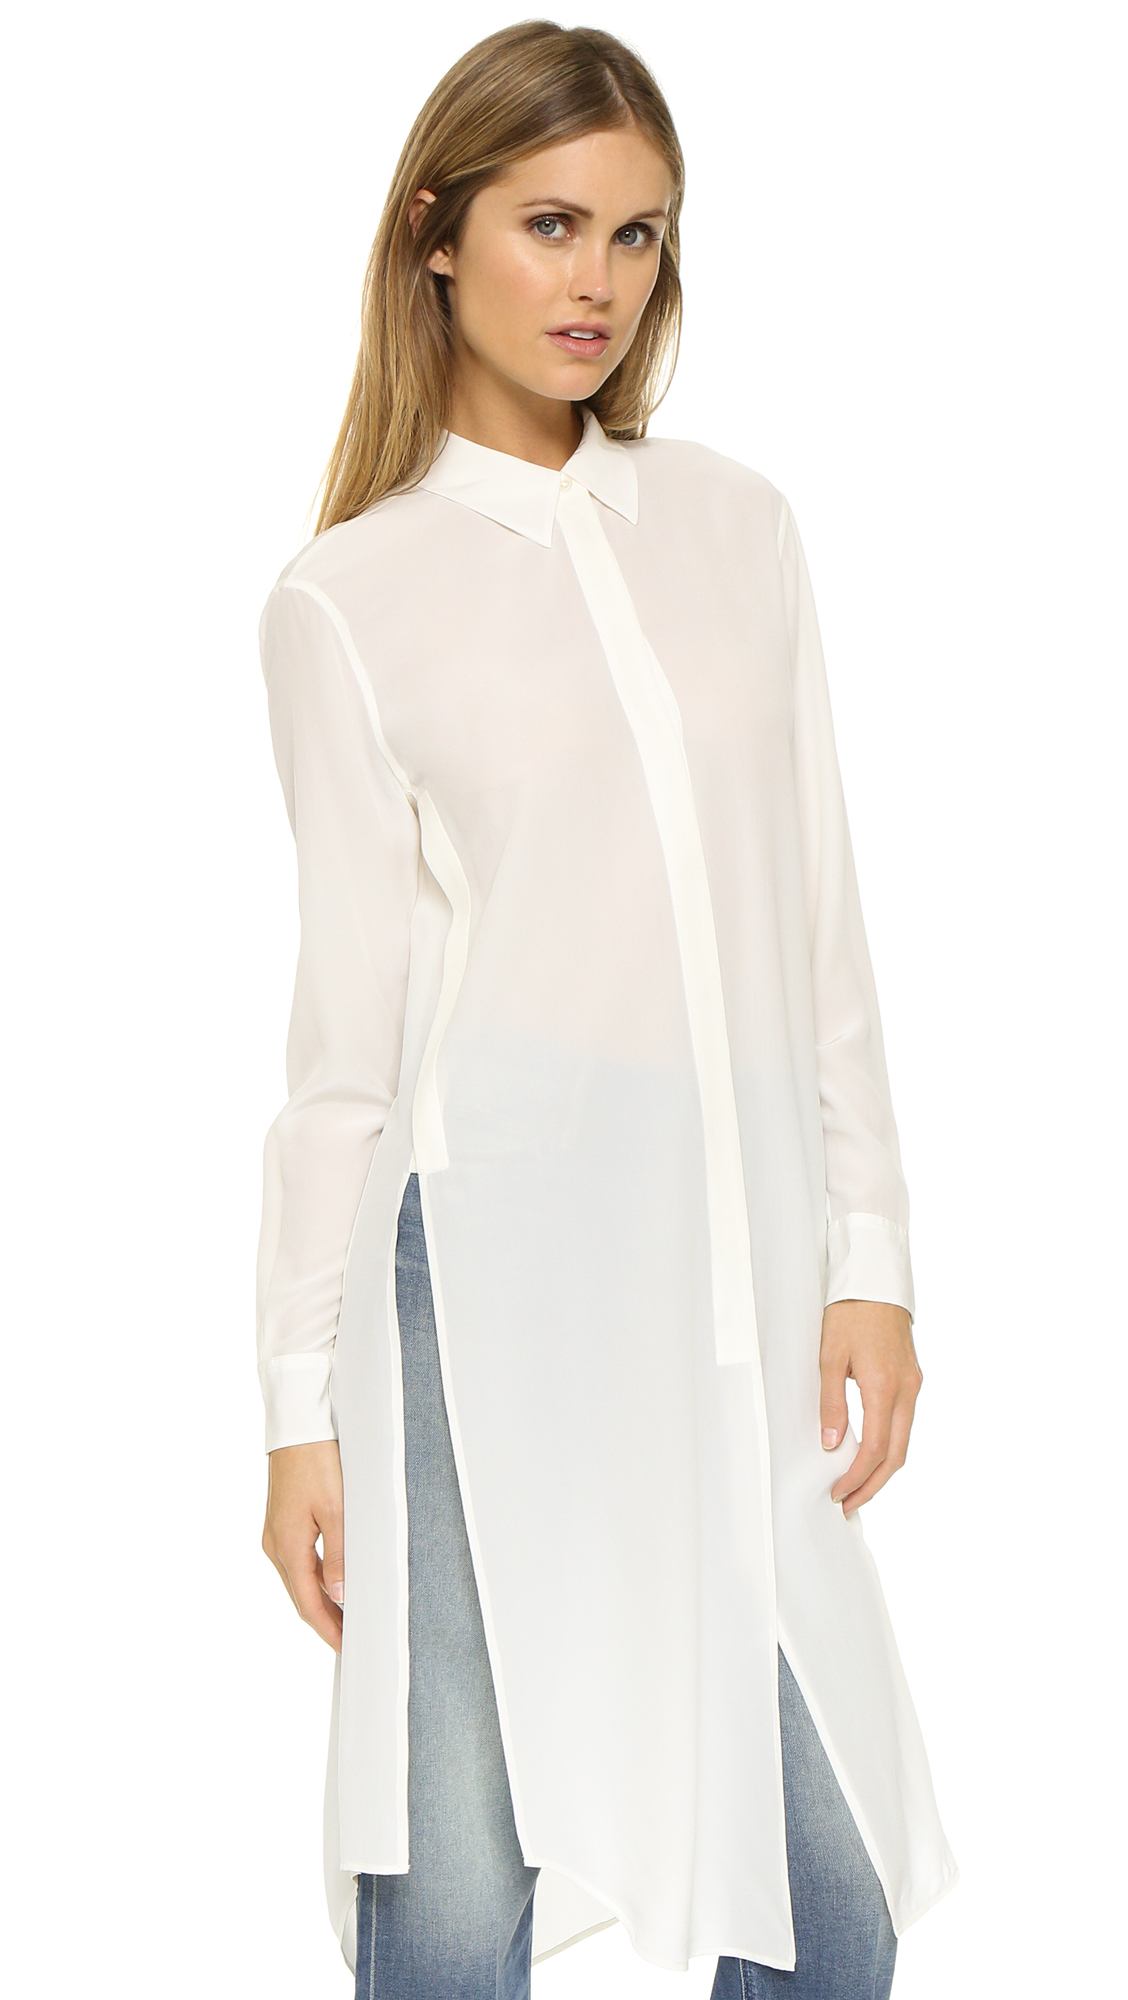 Equipment Pascal Tunic Dress in White - Lyst